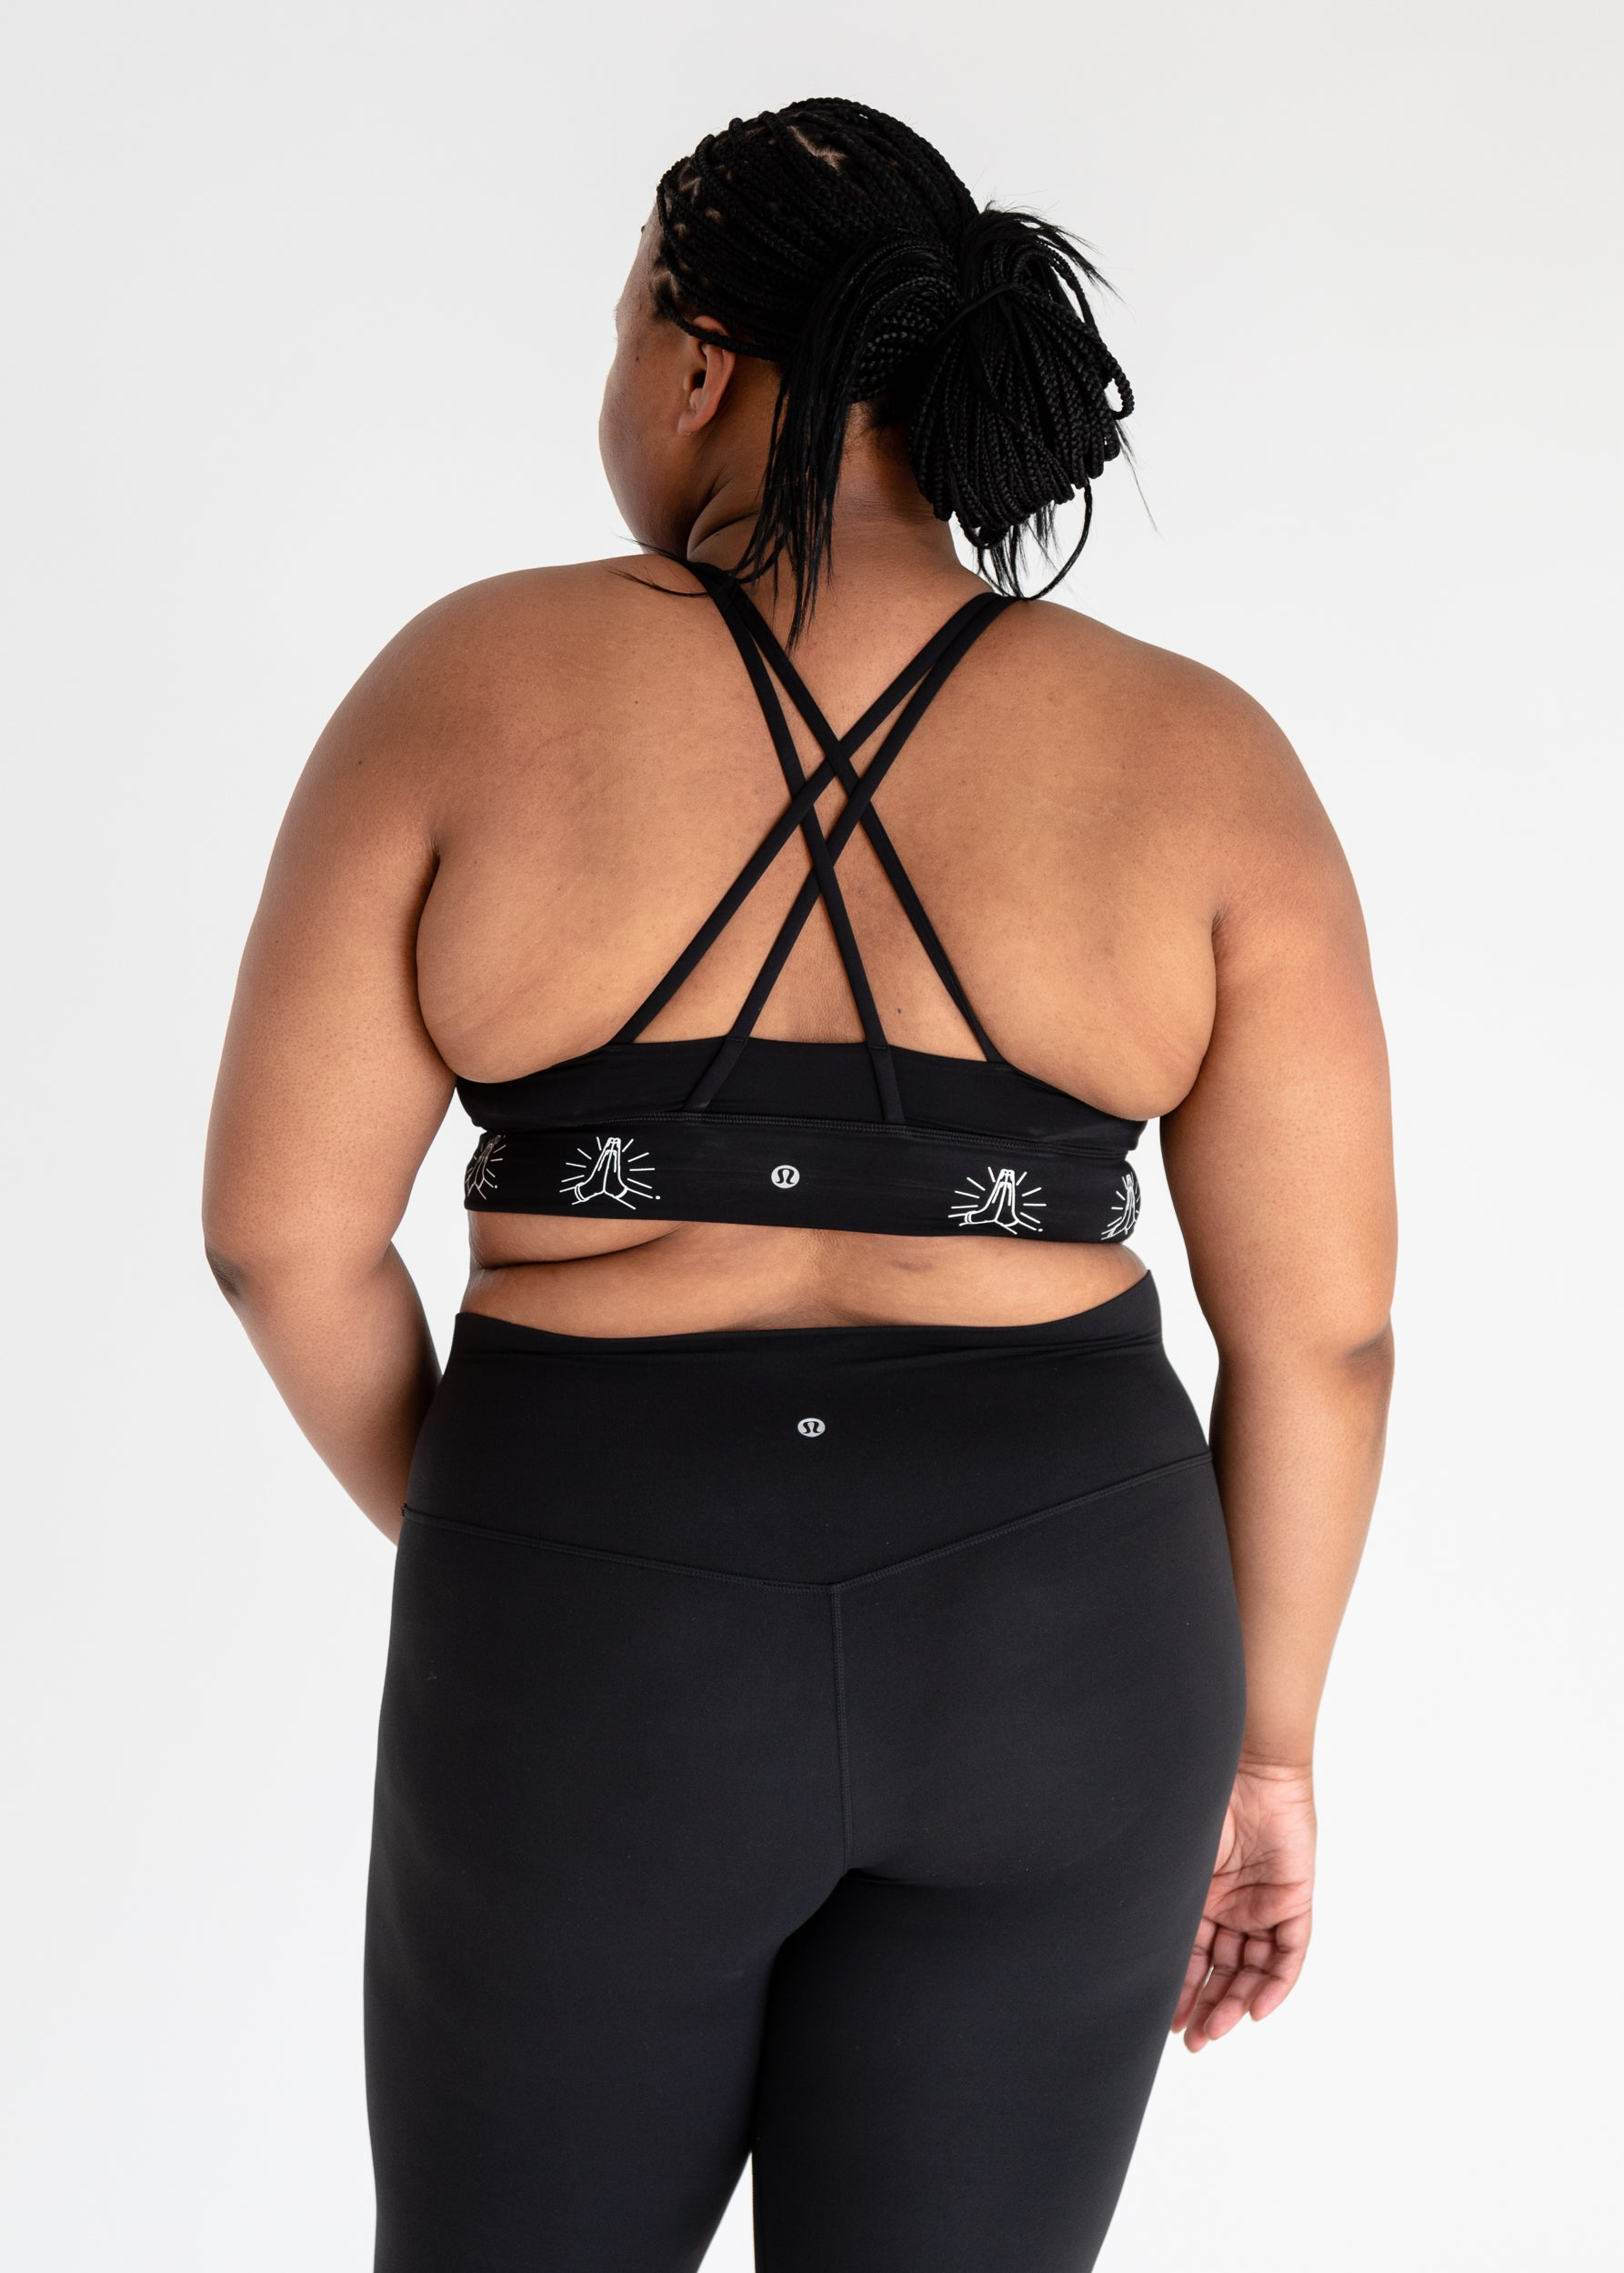 Y7 / Lululemon Energy Long Line Bra